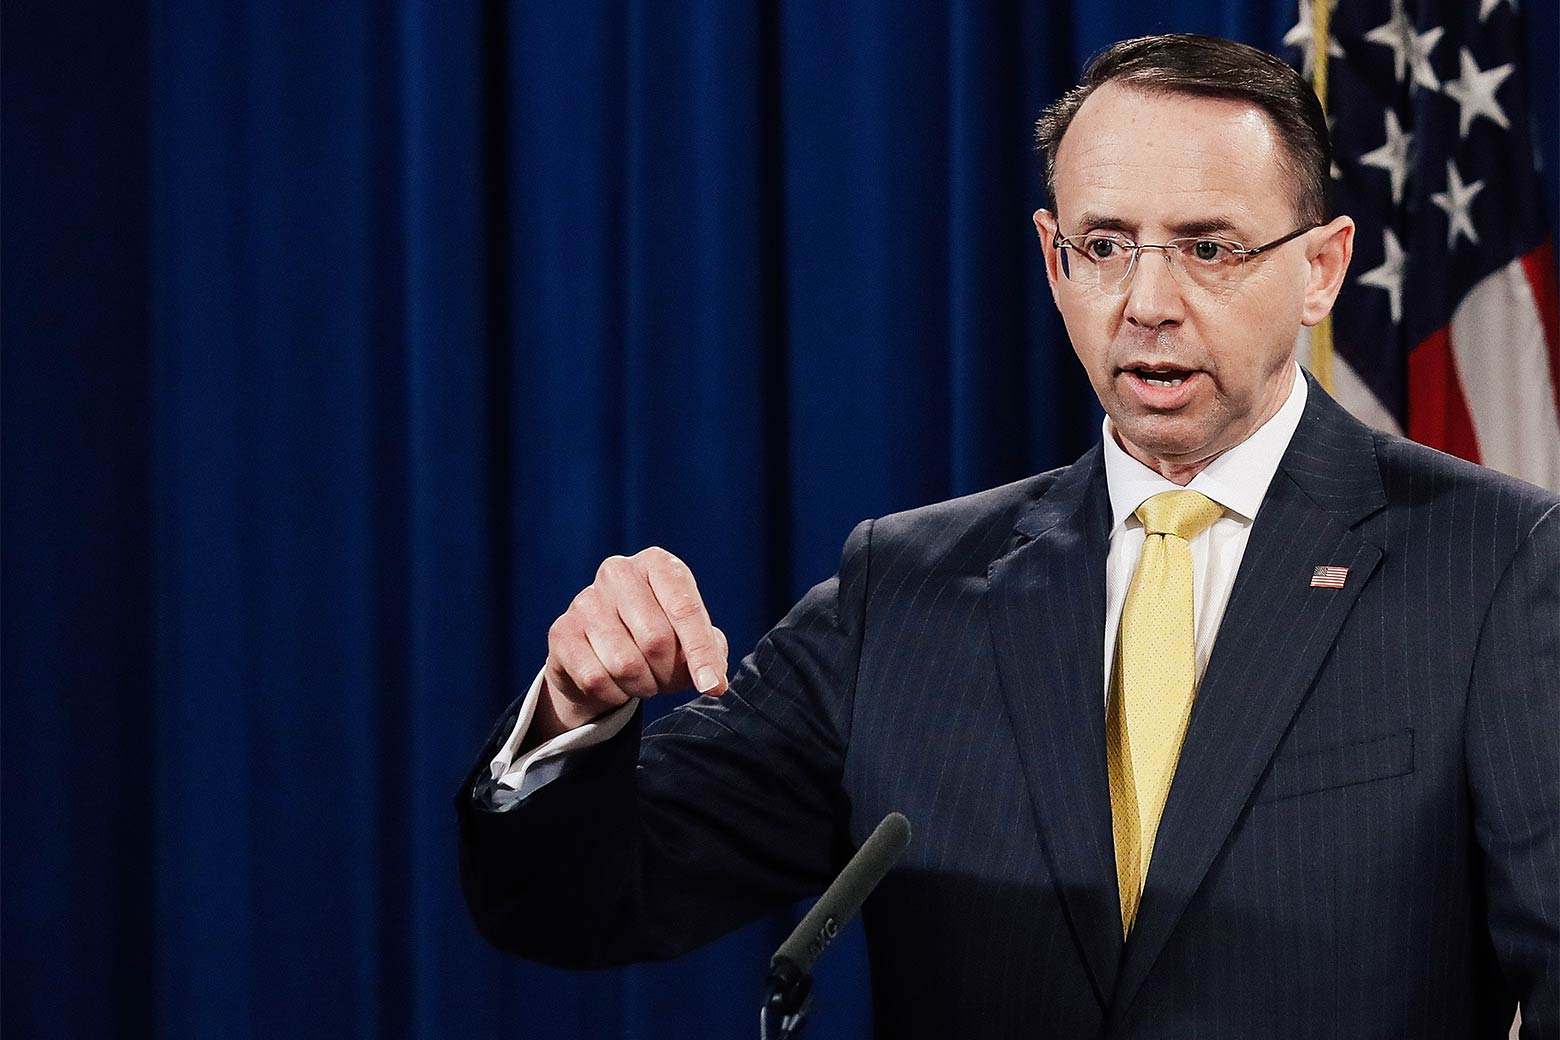 U.S. Deputy Attorney General Rod Rosenstein announces the indictment of 13 Russian nationals and 3 Russian organizations for meddling in the 2016 U.S. presidential election February 16, 2018 at the Justice Department in Washington, DC. The indictments are the first charges brought by special counsel Robert Mueller while investigating interference in the election.